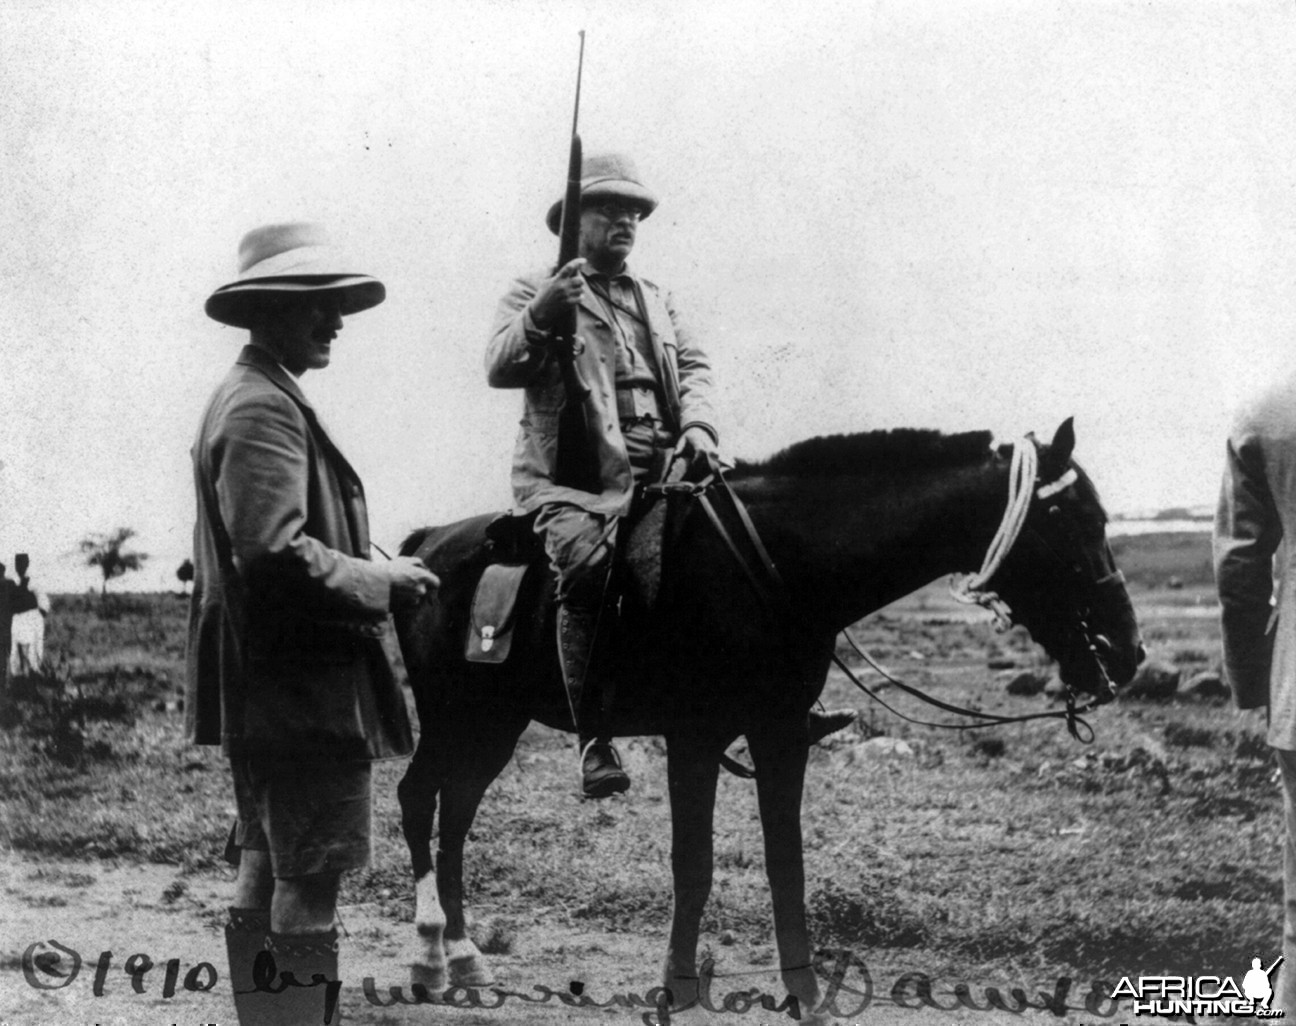 Theodore Roosevelt holding rifle on horseback in Africa, circa 1910